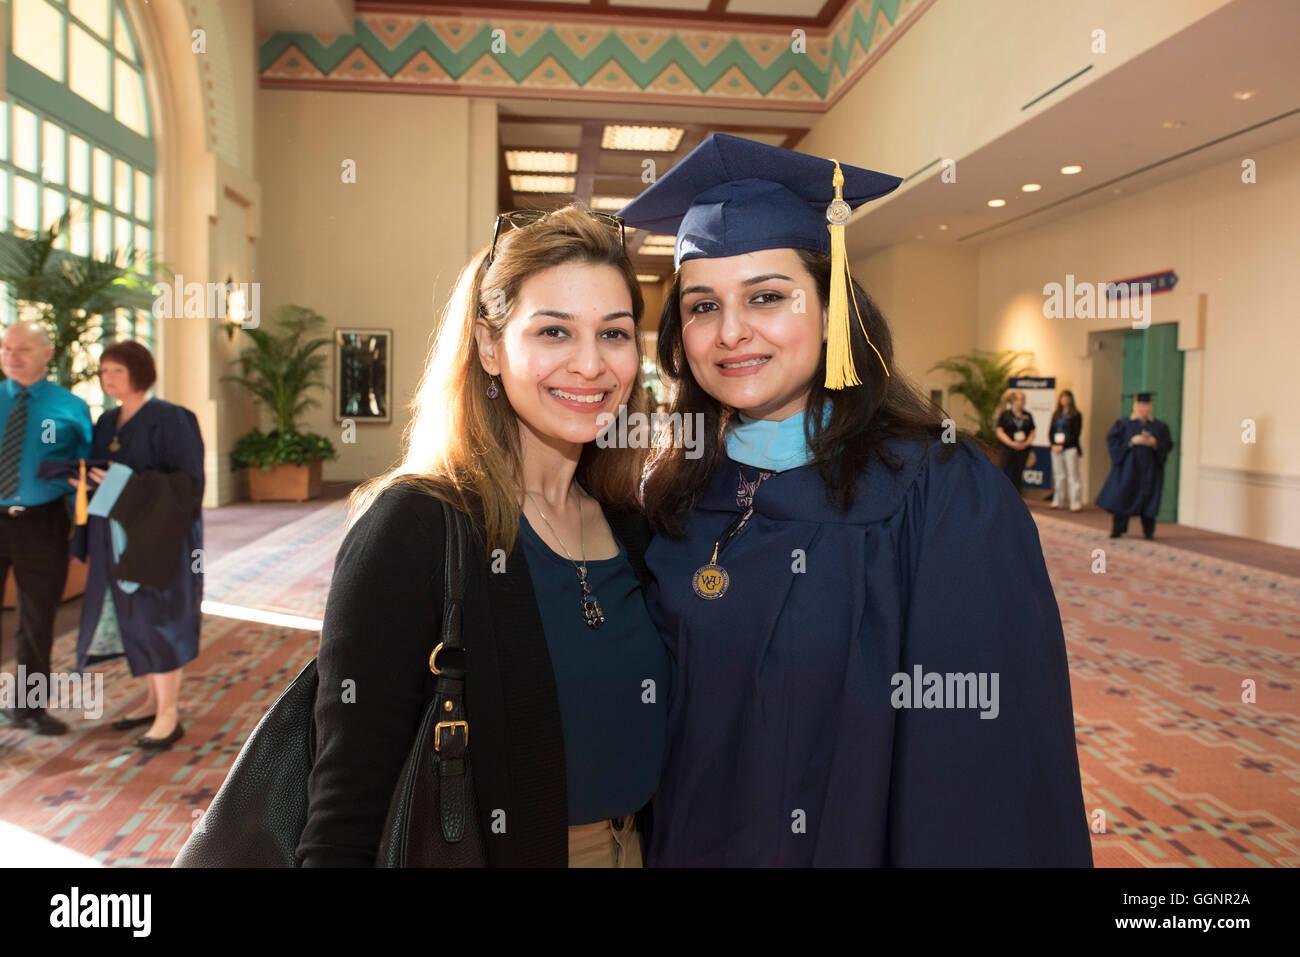 Graduate of Western Governors University poses with friend after